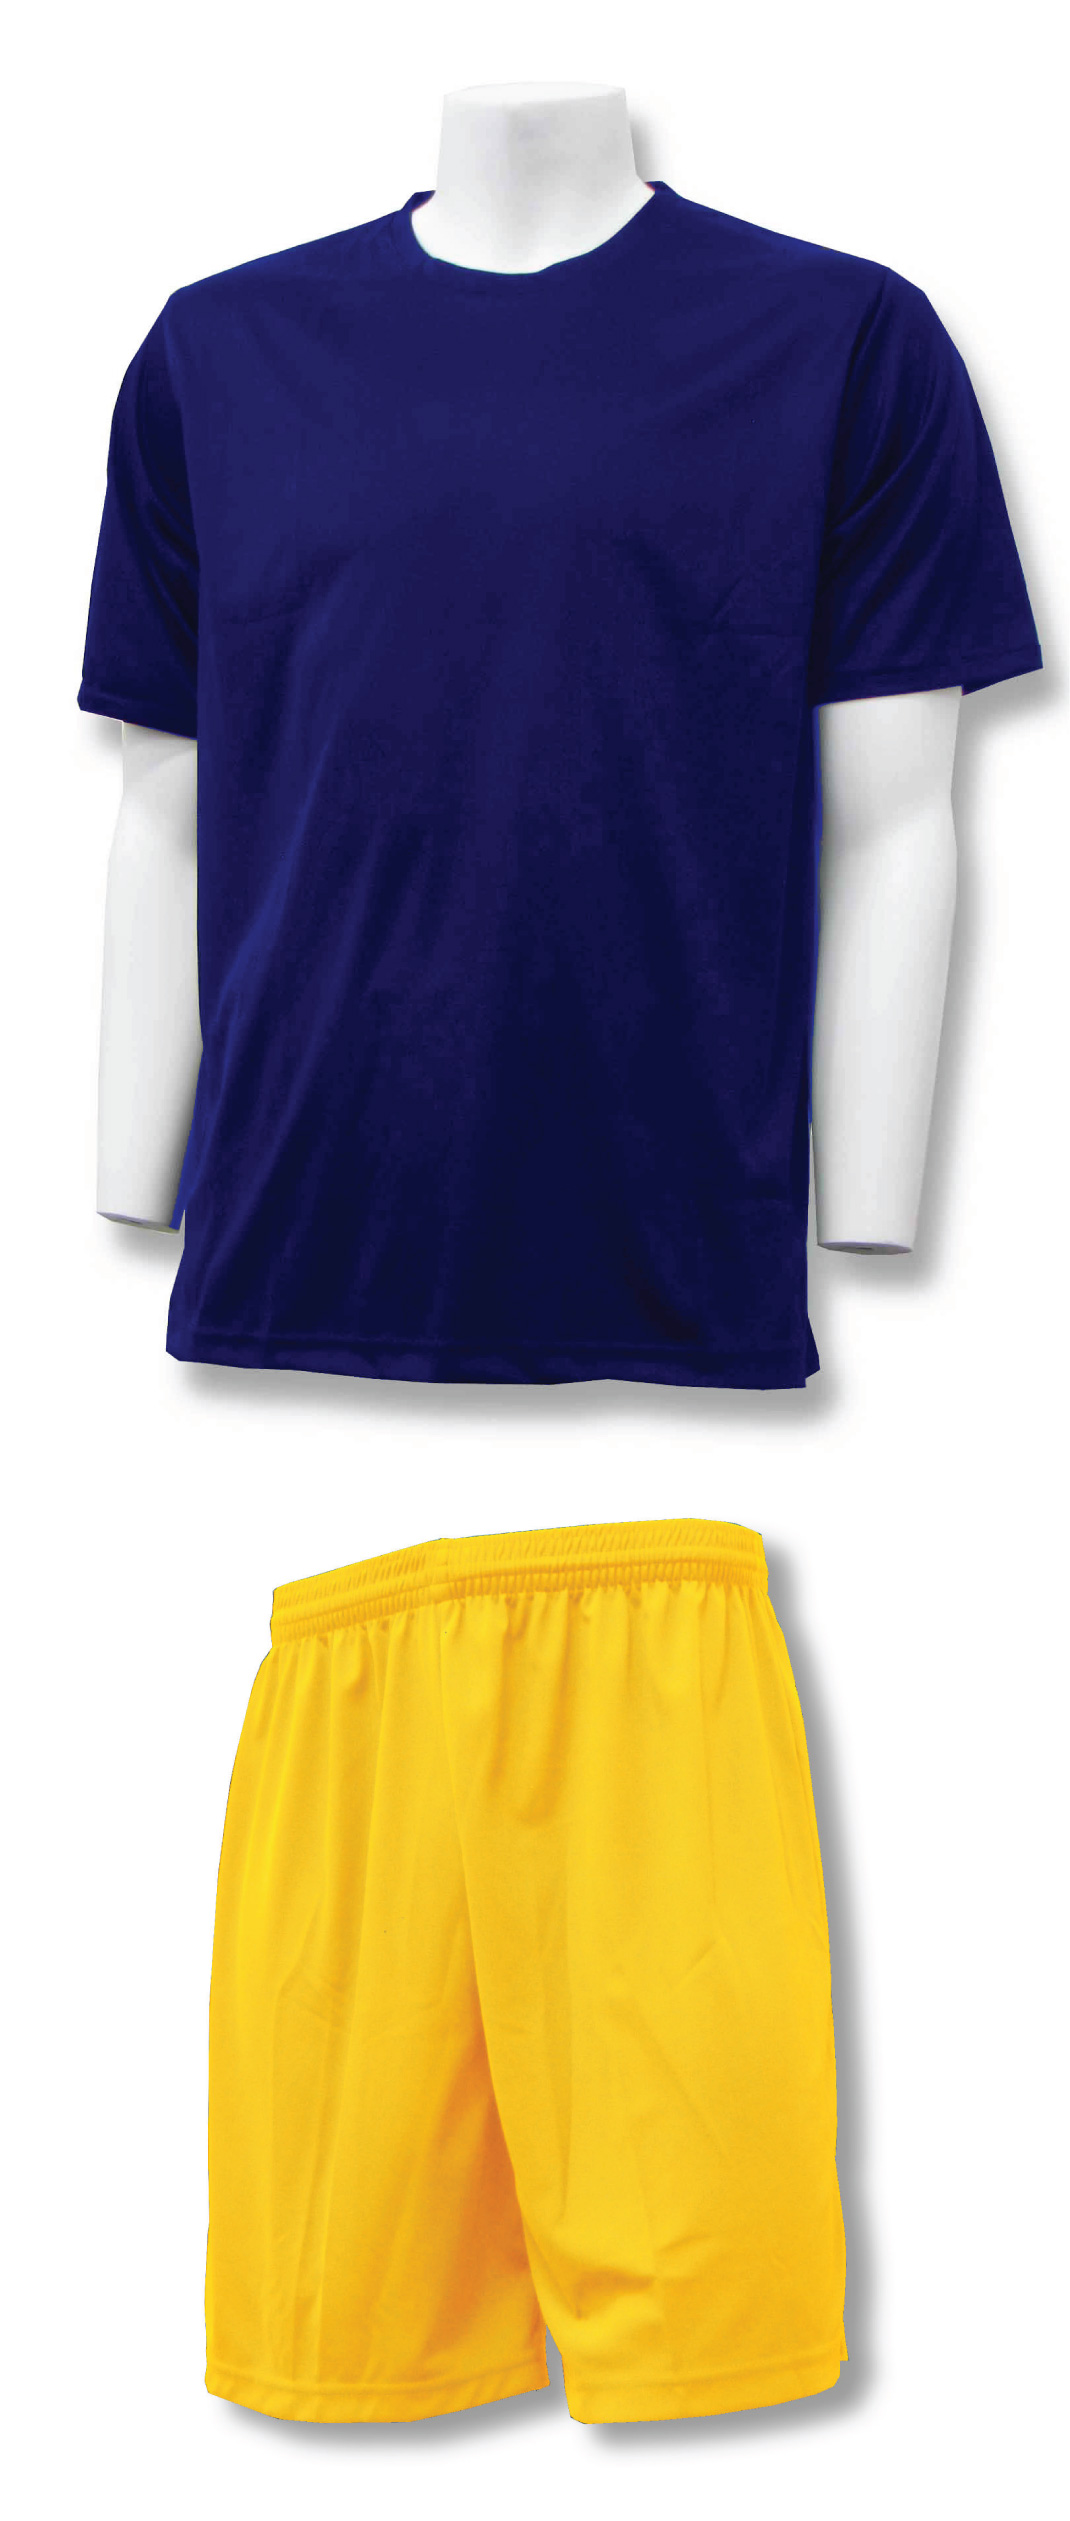 Soccer Training Kit in navy/gold by Code Four Athletics